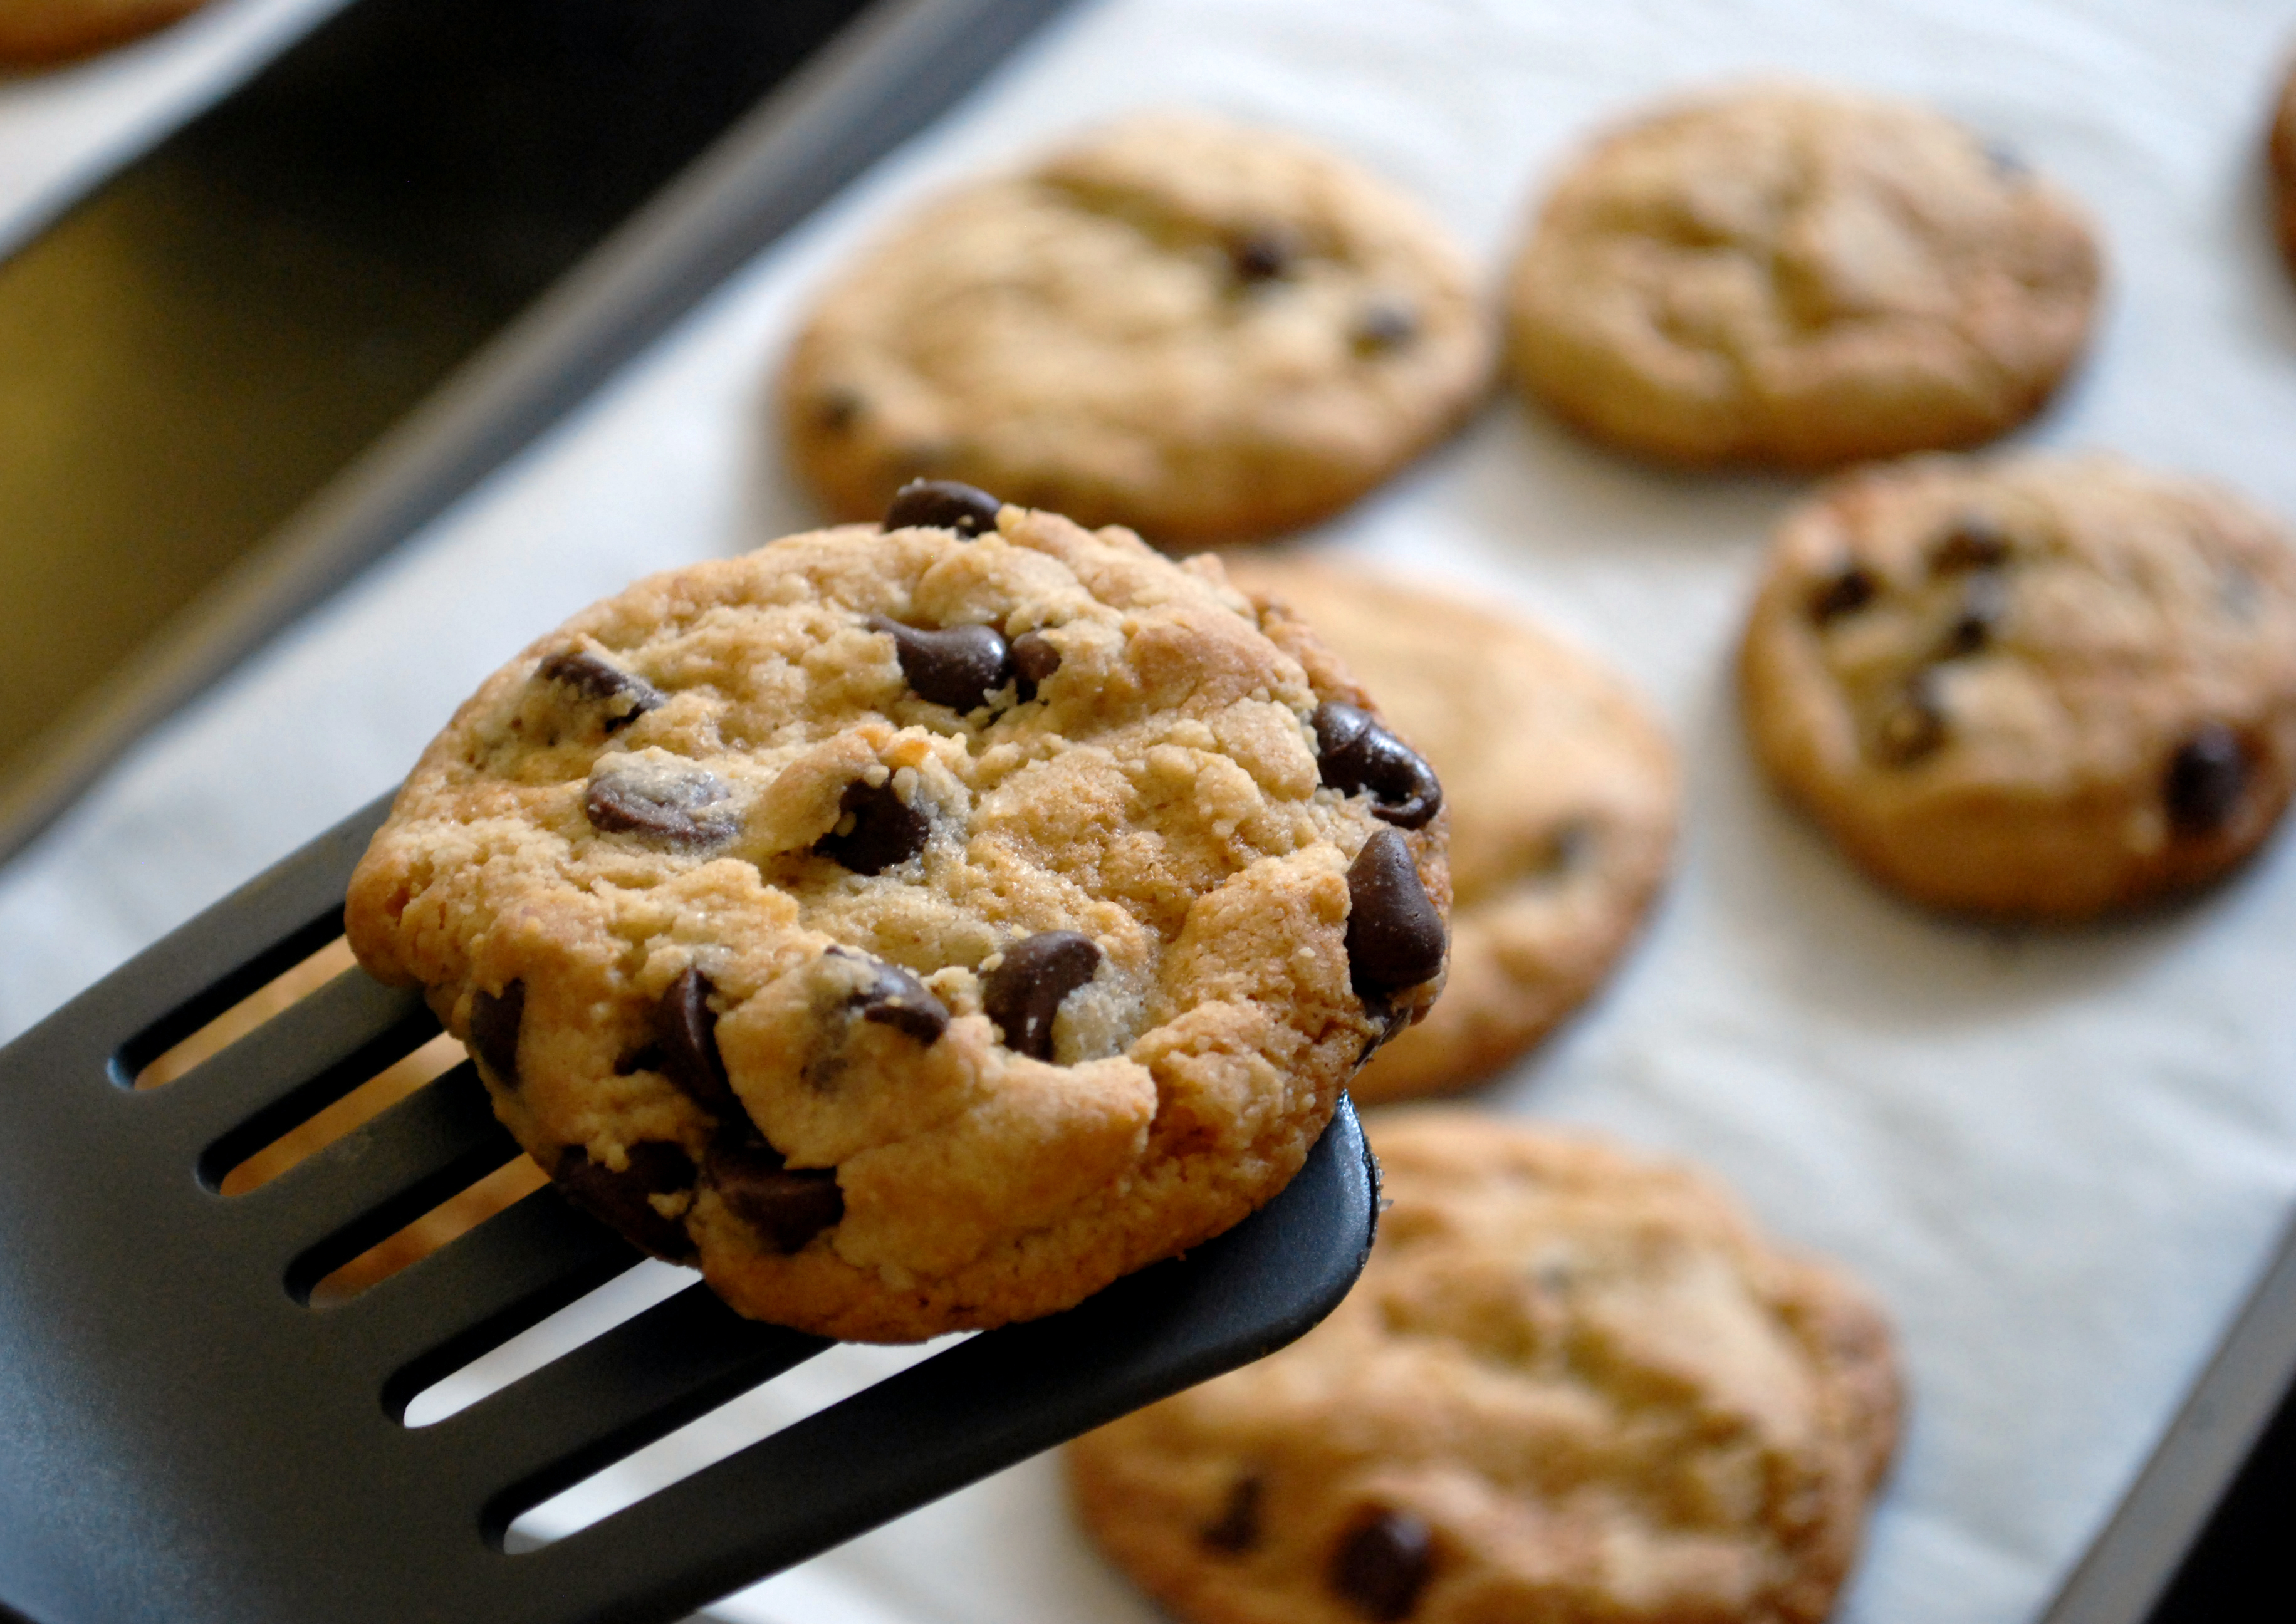 Chocolate Chip Cookies on Spatula Coming Out of Oven